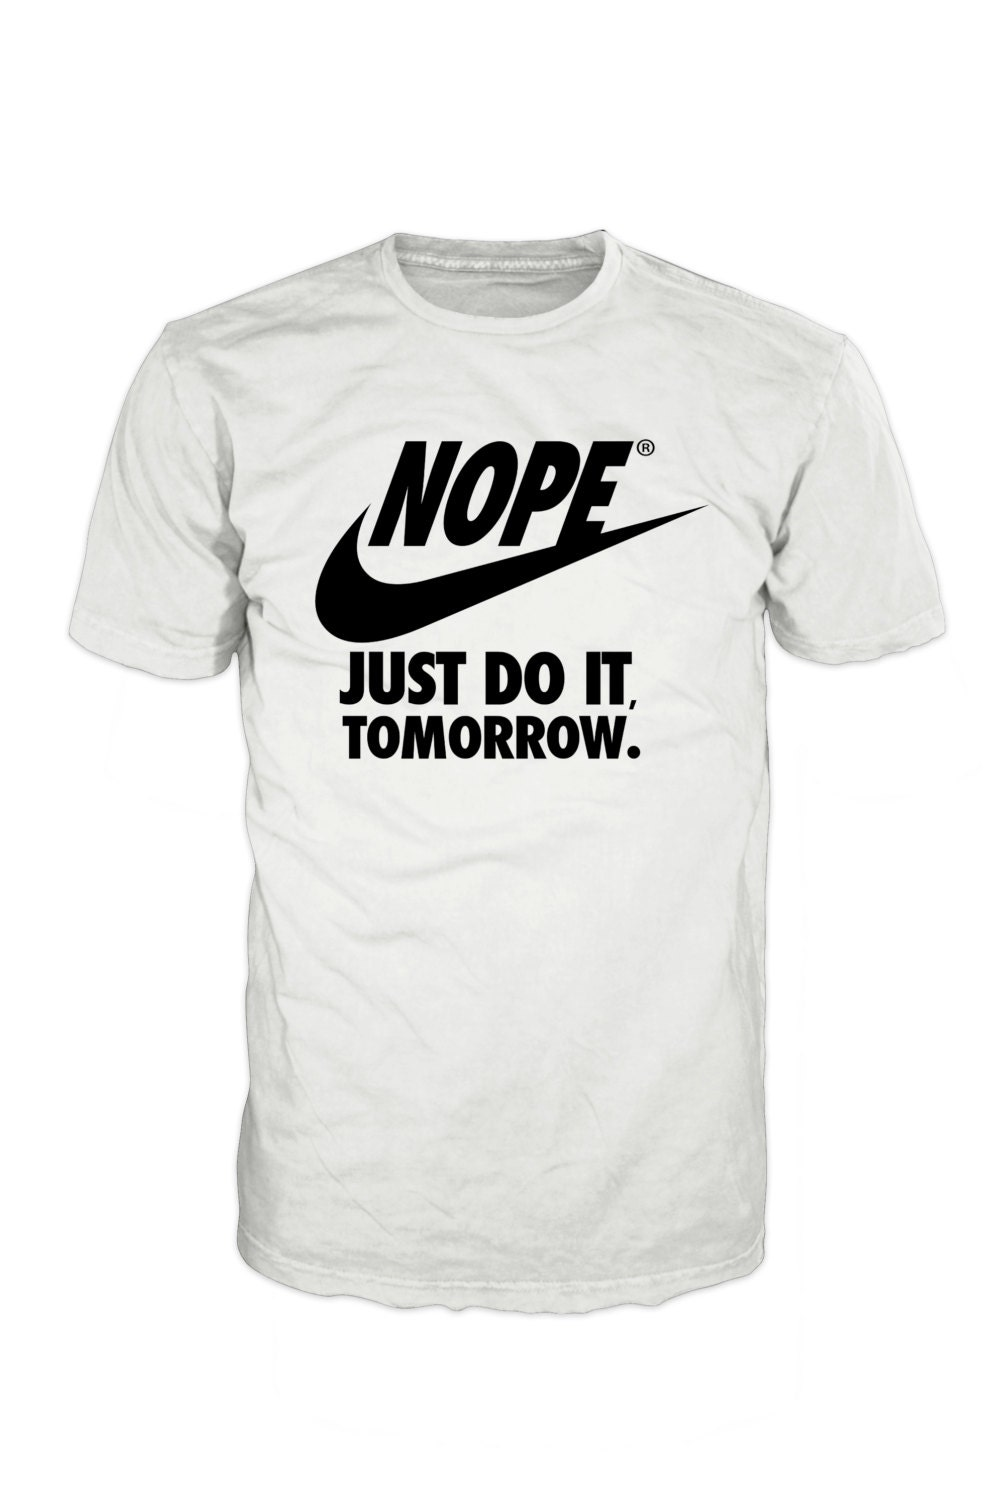 Nope just do it tomorrow T-shirt. Not the sporty type Perfect